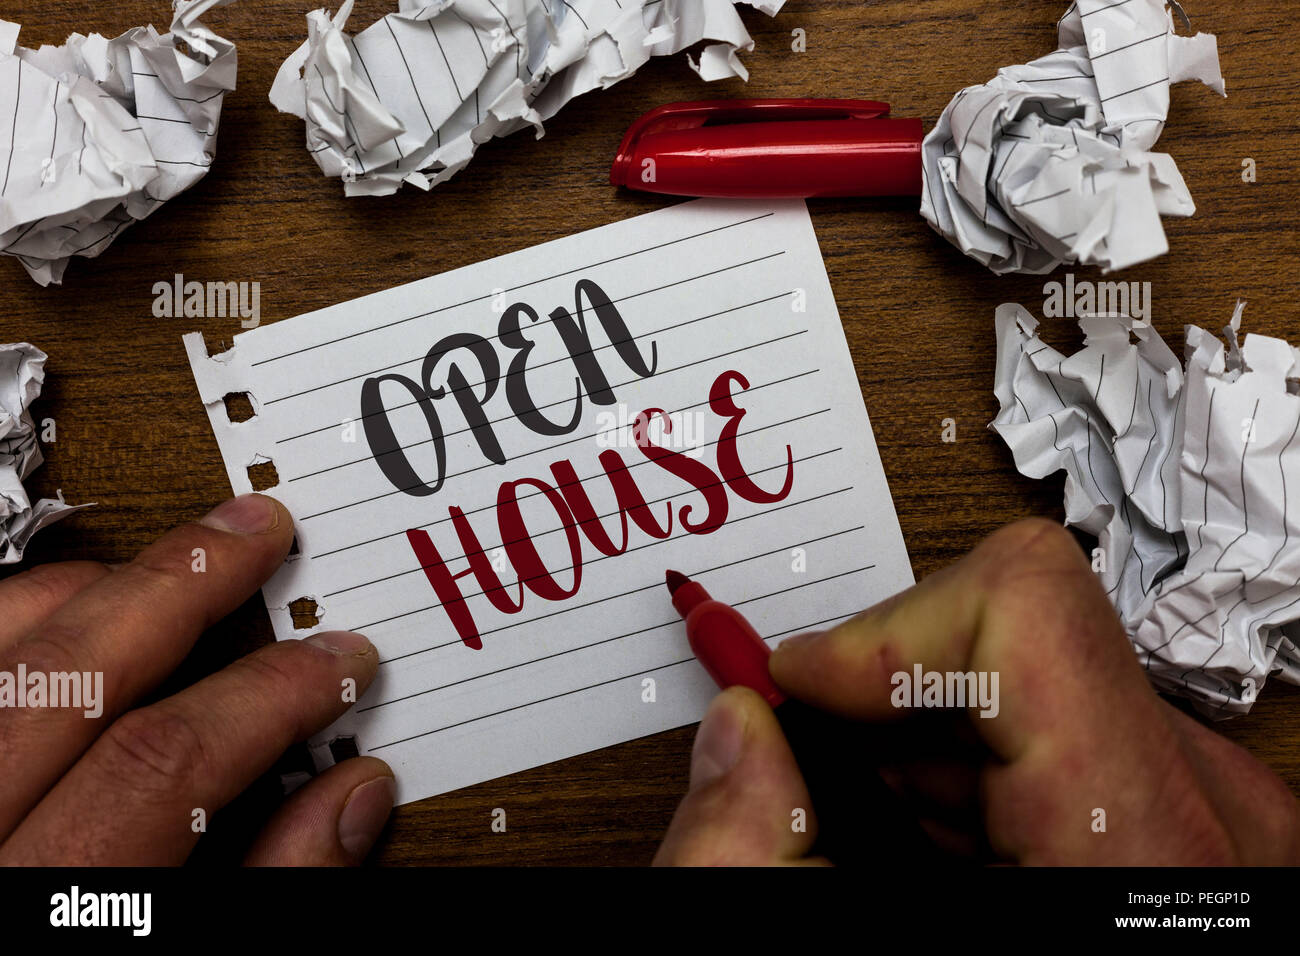 Sell house home meaning property stock photos sell house home concept meaning you can come whatever whenever want make yourself at solutioingenieria Images